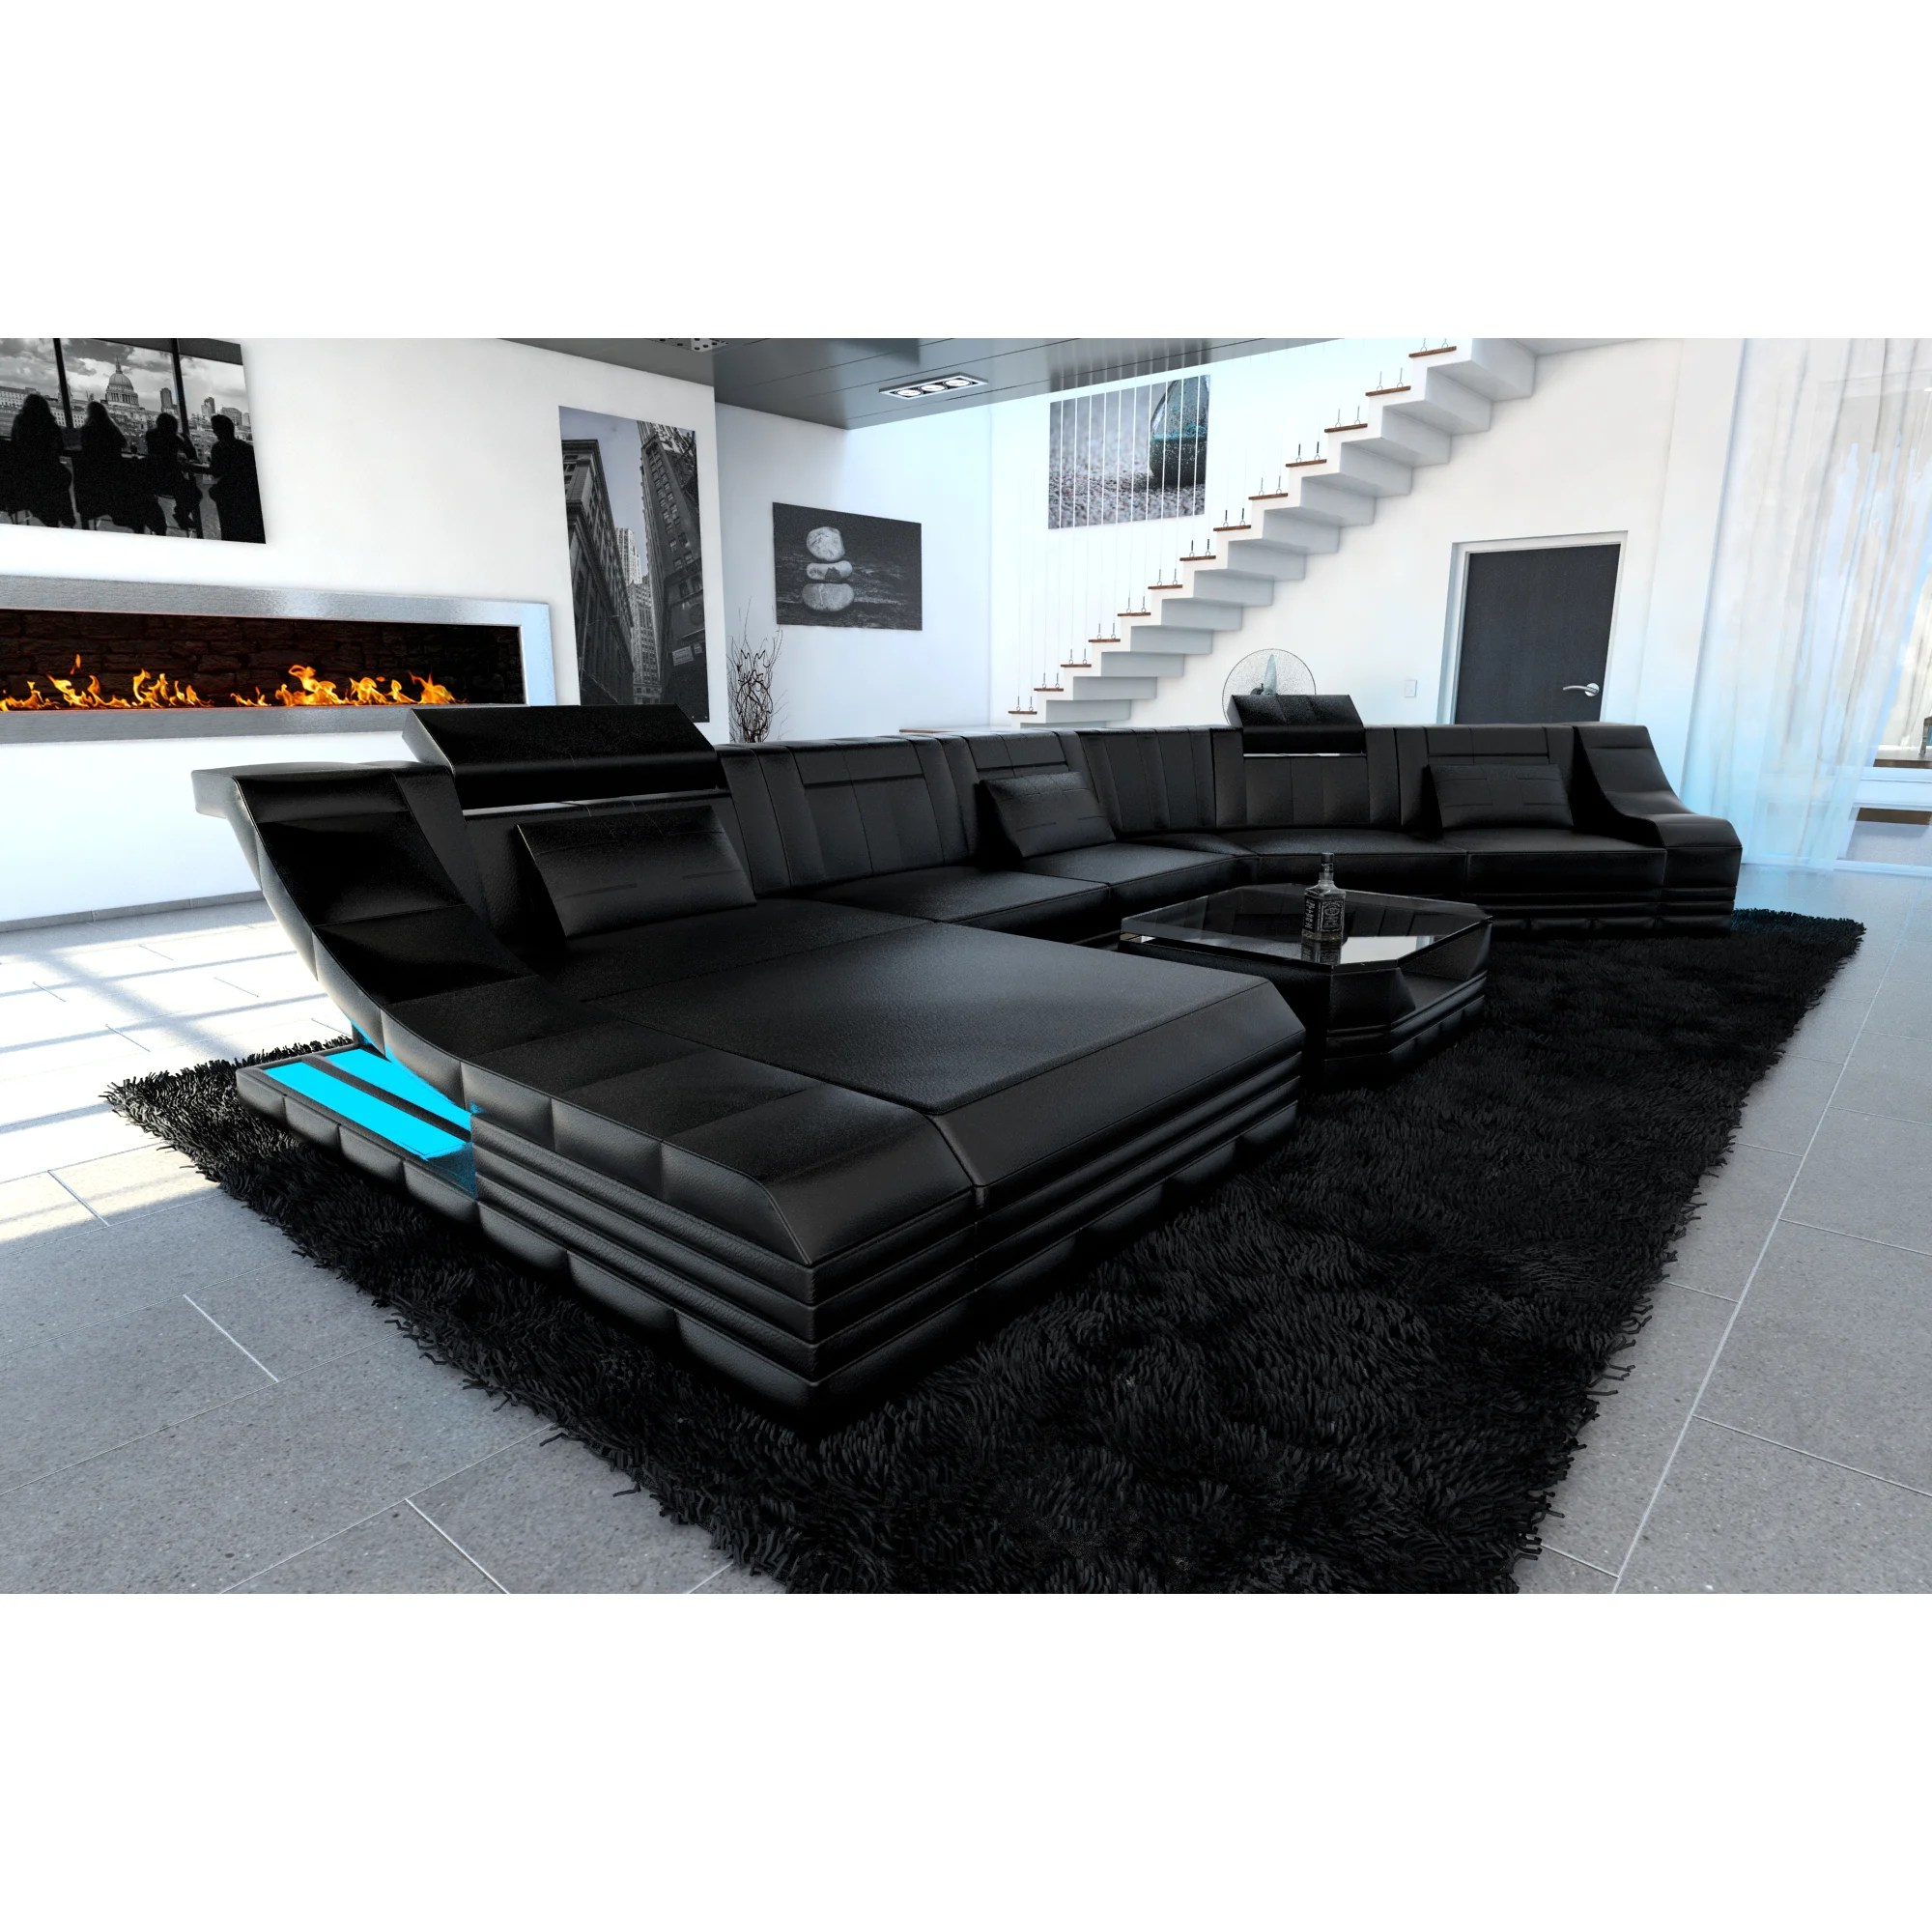 Sofa Jacksonville Xl Luxury Sectional Sofa New York Cl Led Lights